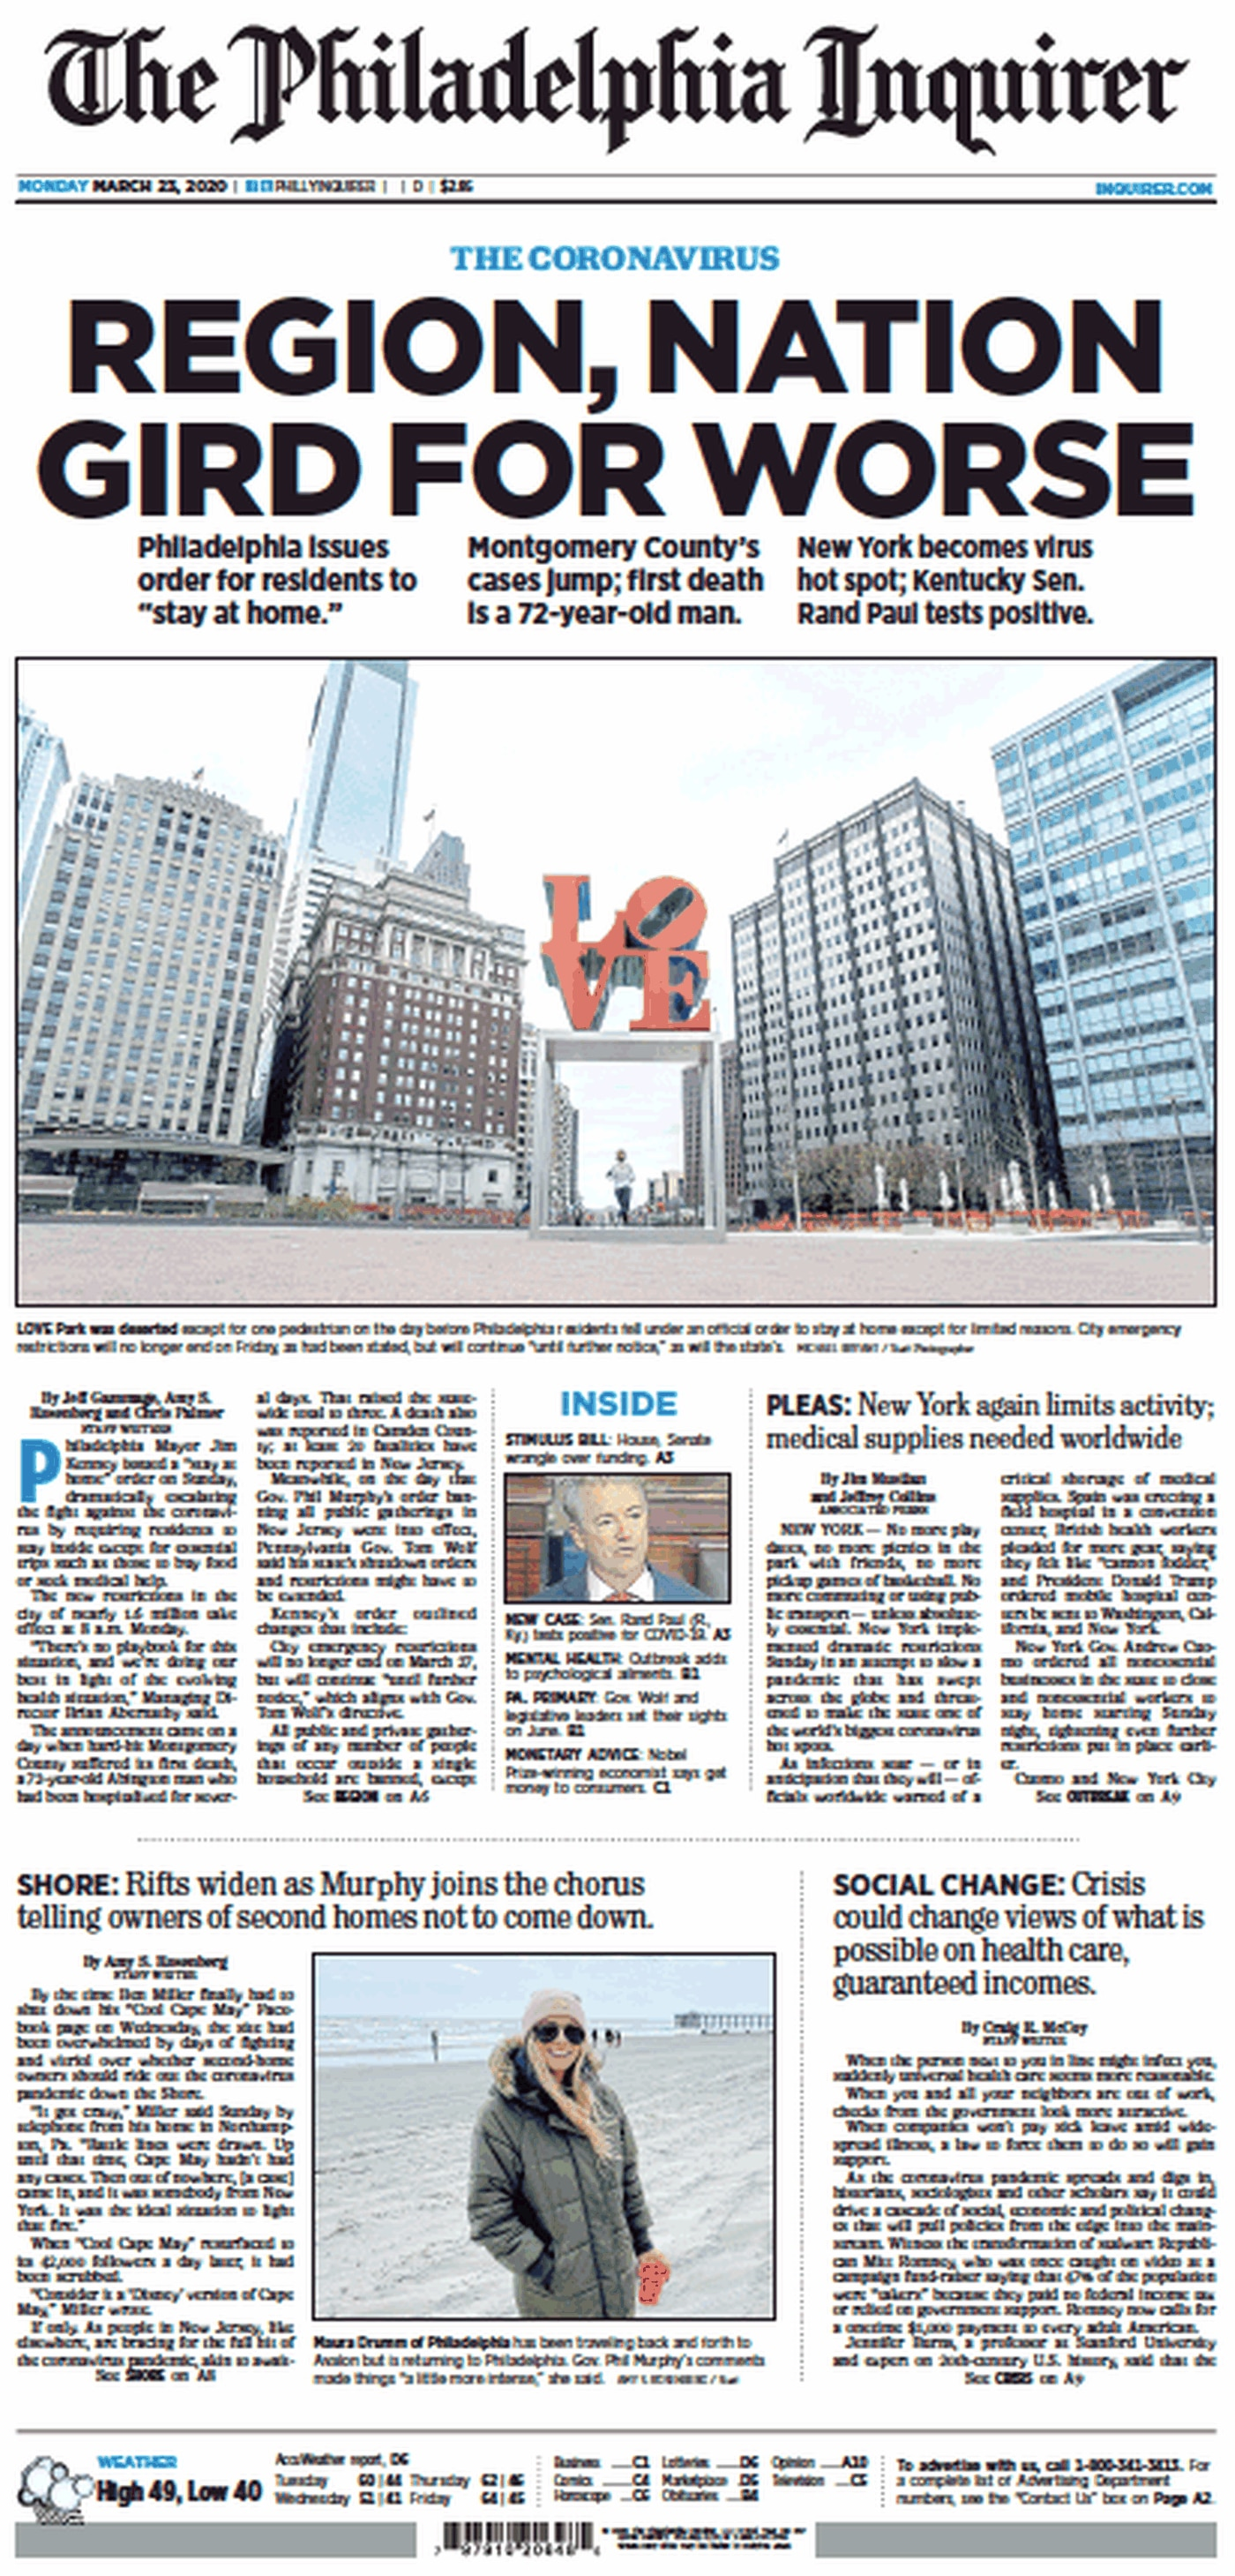 The front page of the Philadelphia Inquirer for Monday, March 23, 2020.